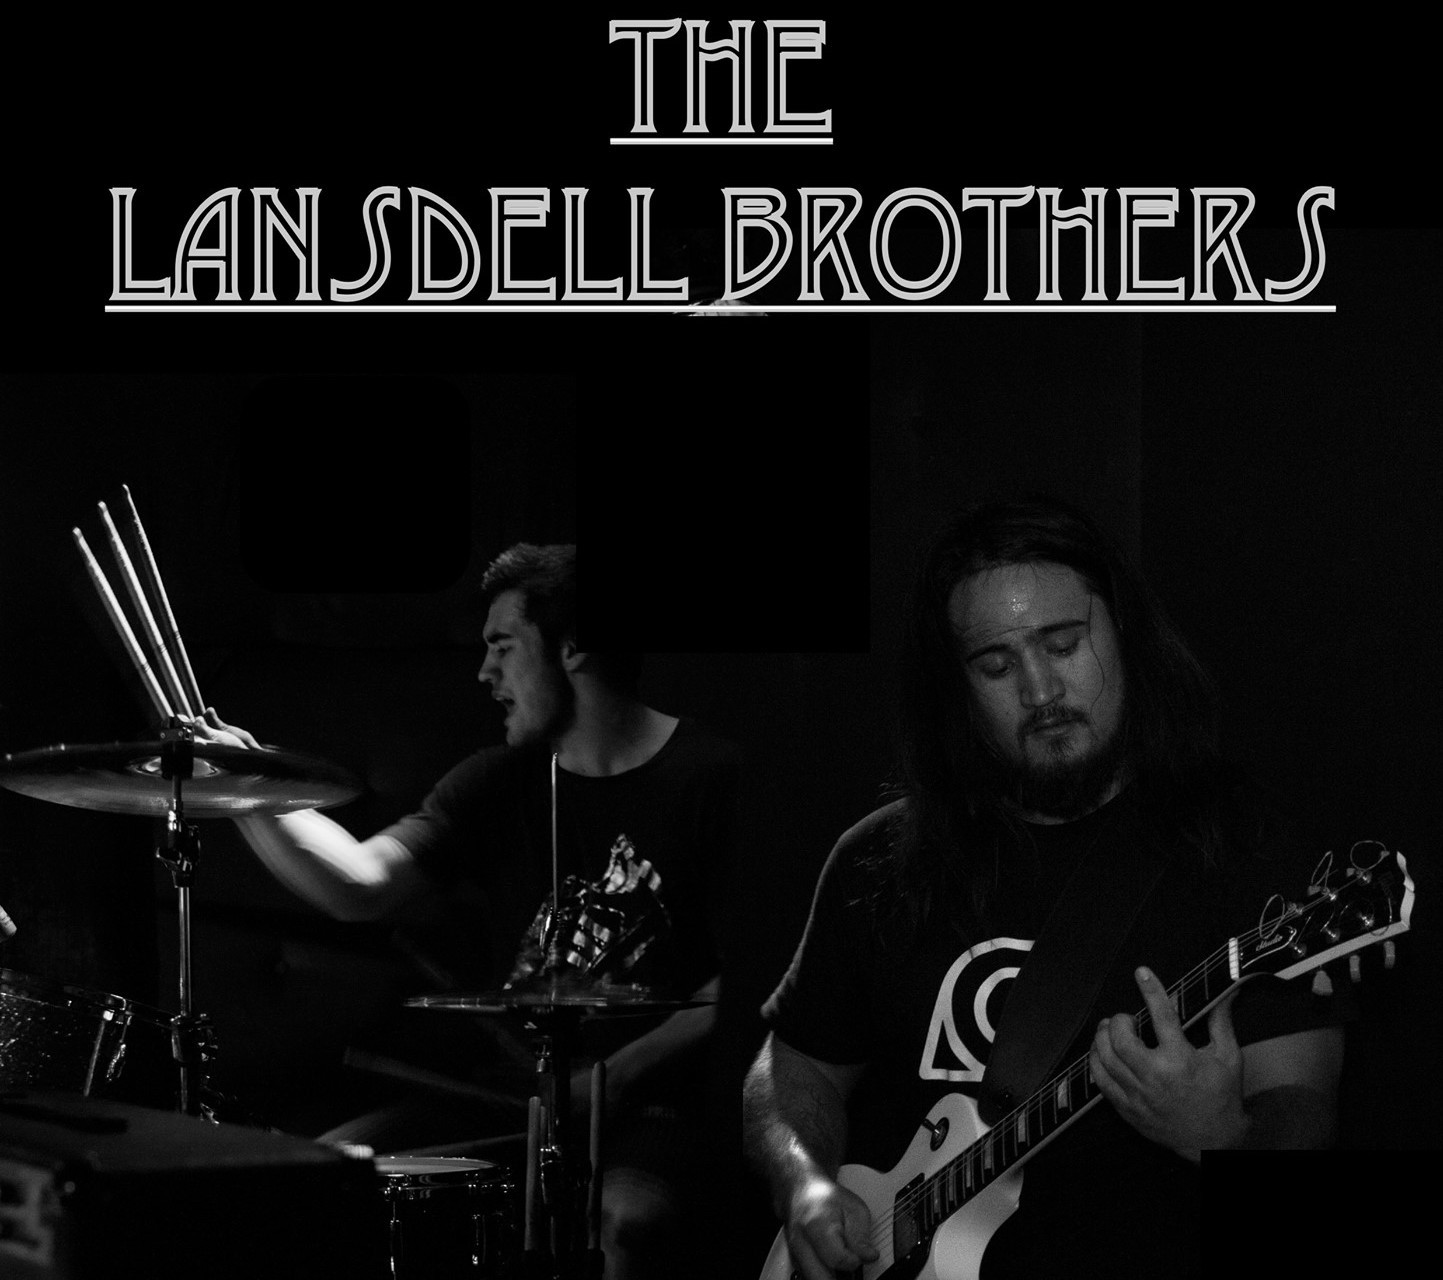 The Lansdell Brothers